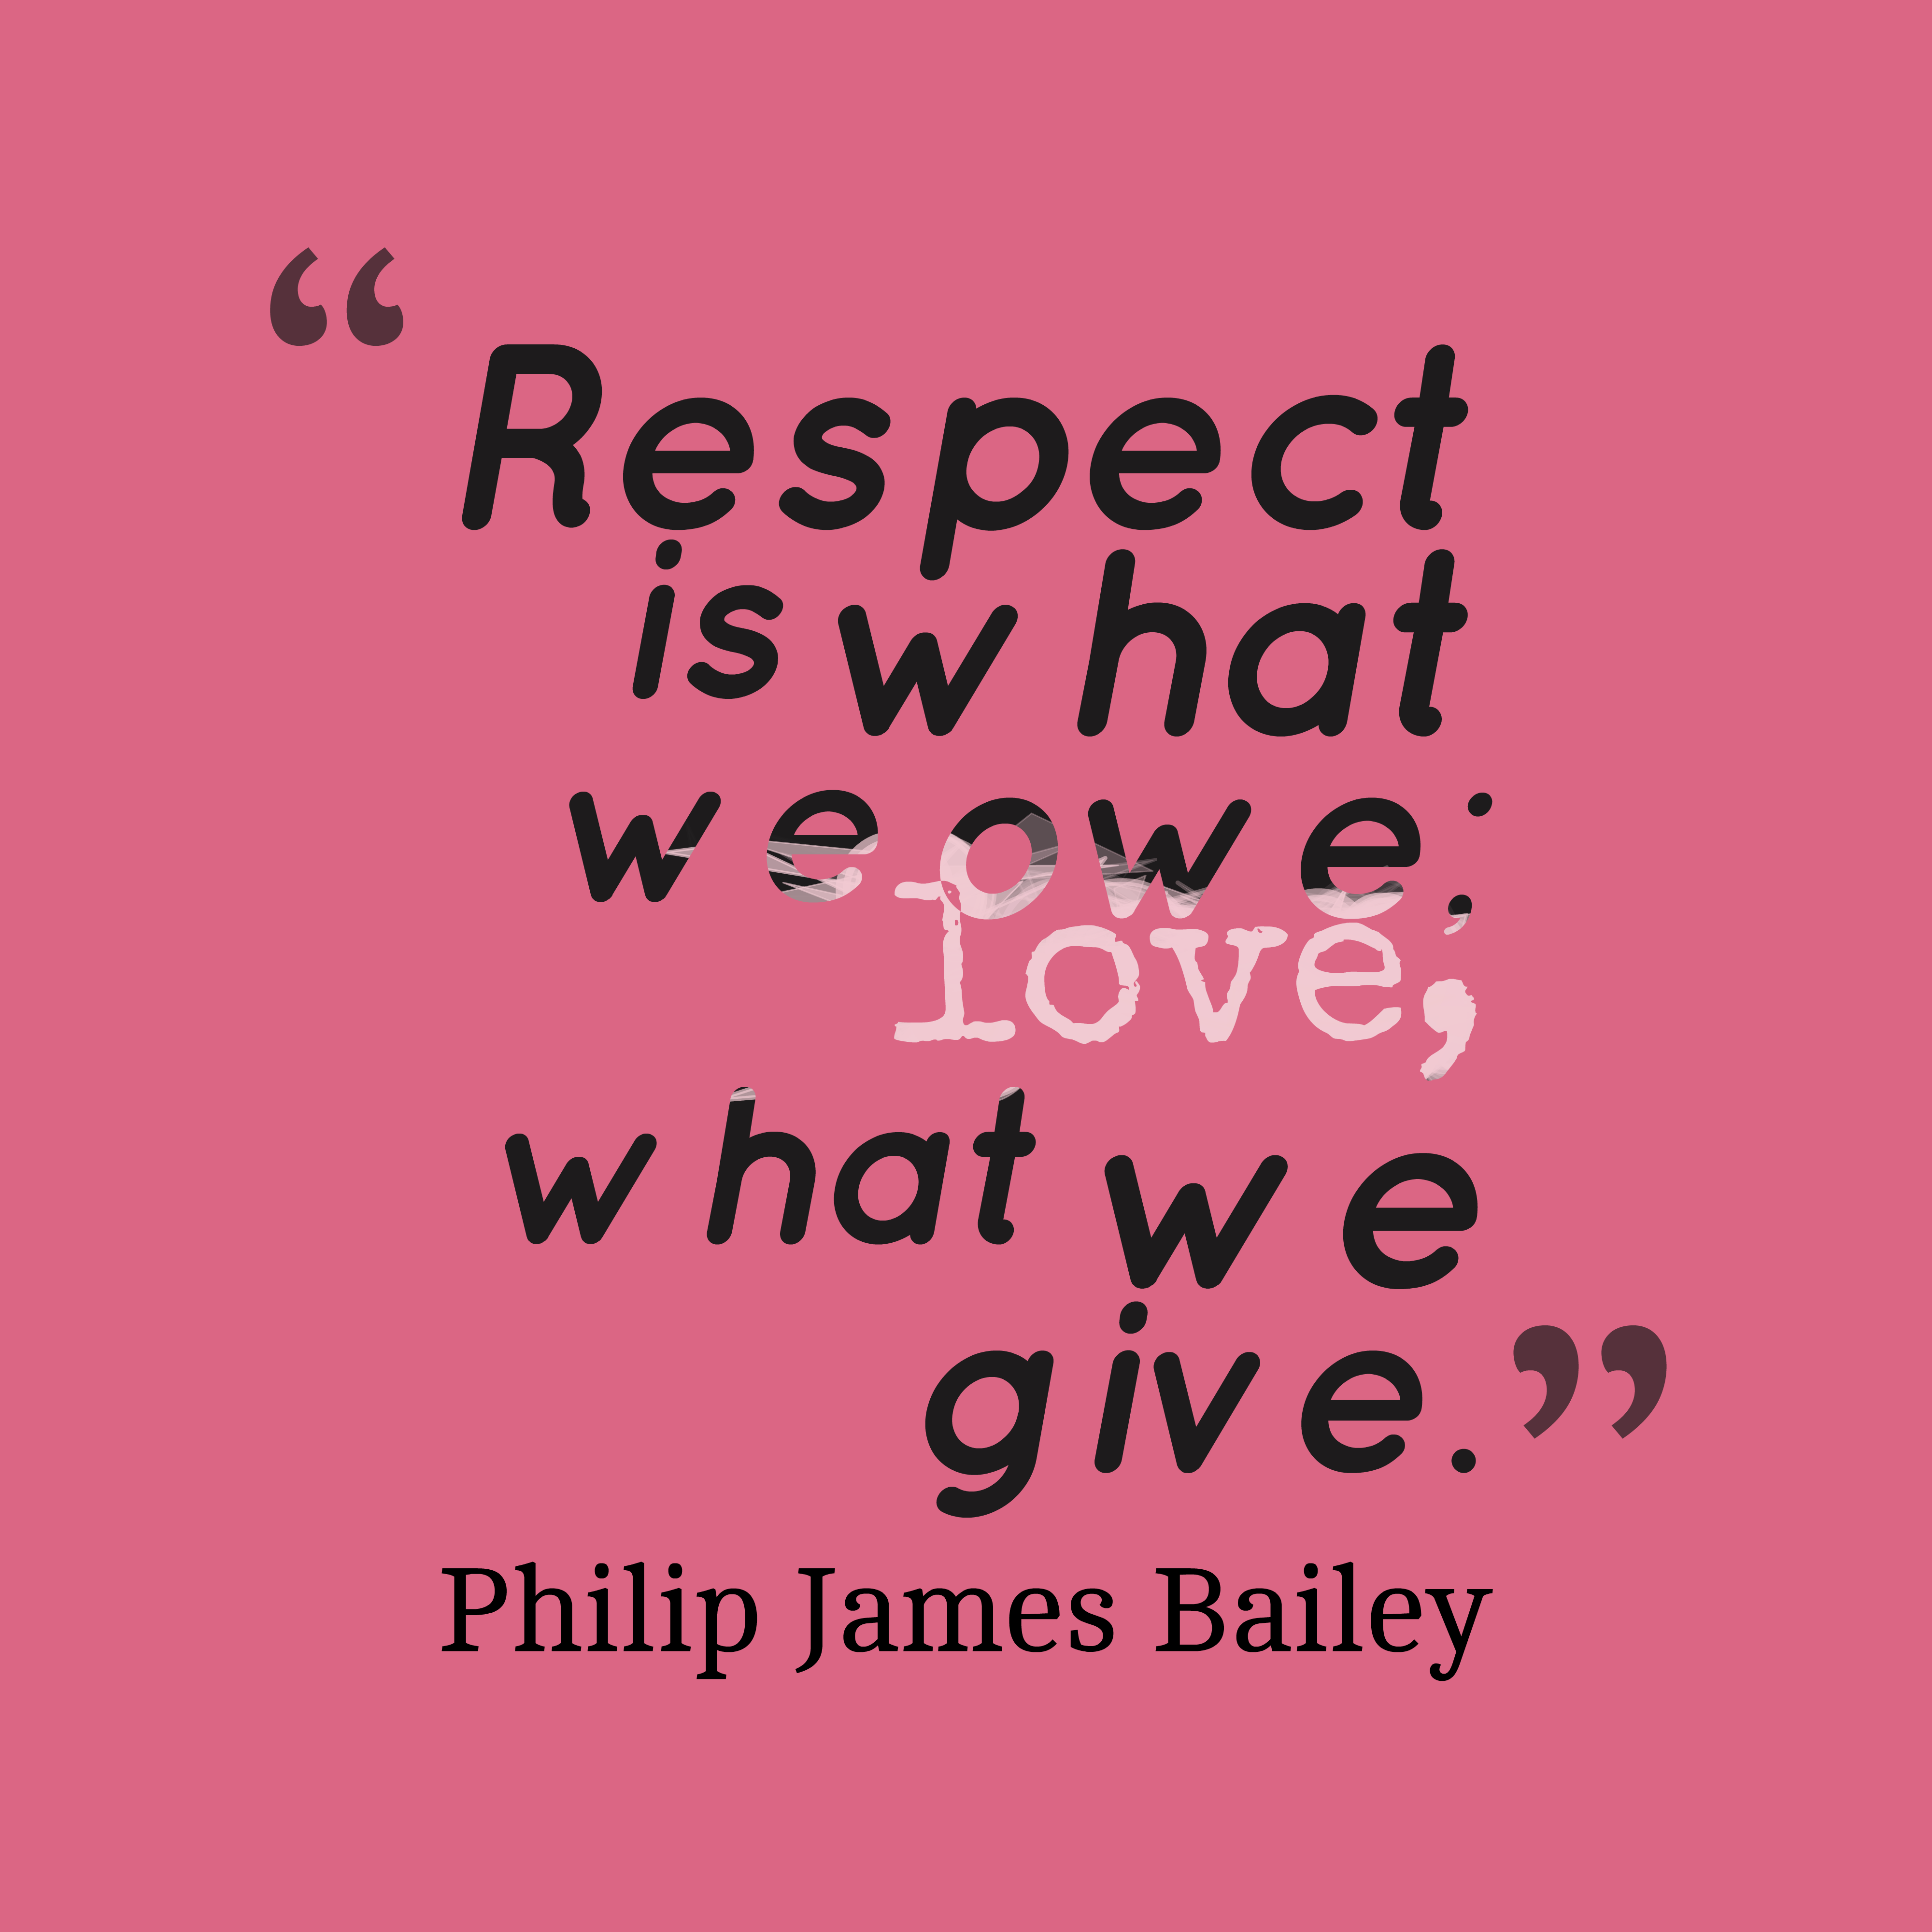 Philip James Bailey Quote About Respect